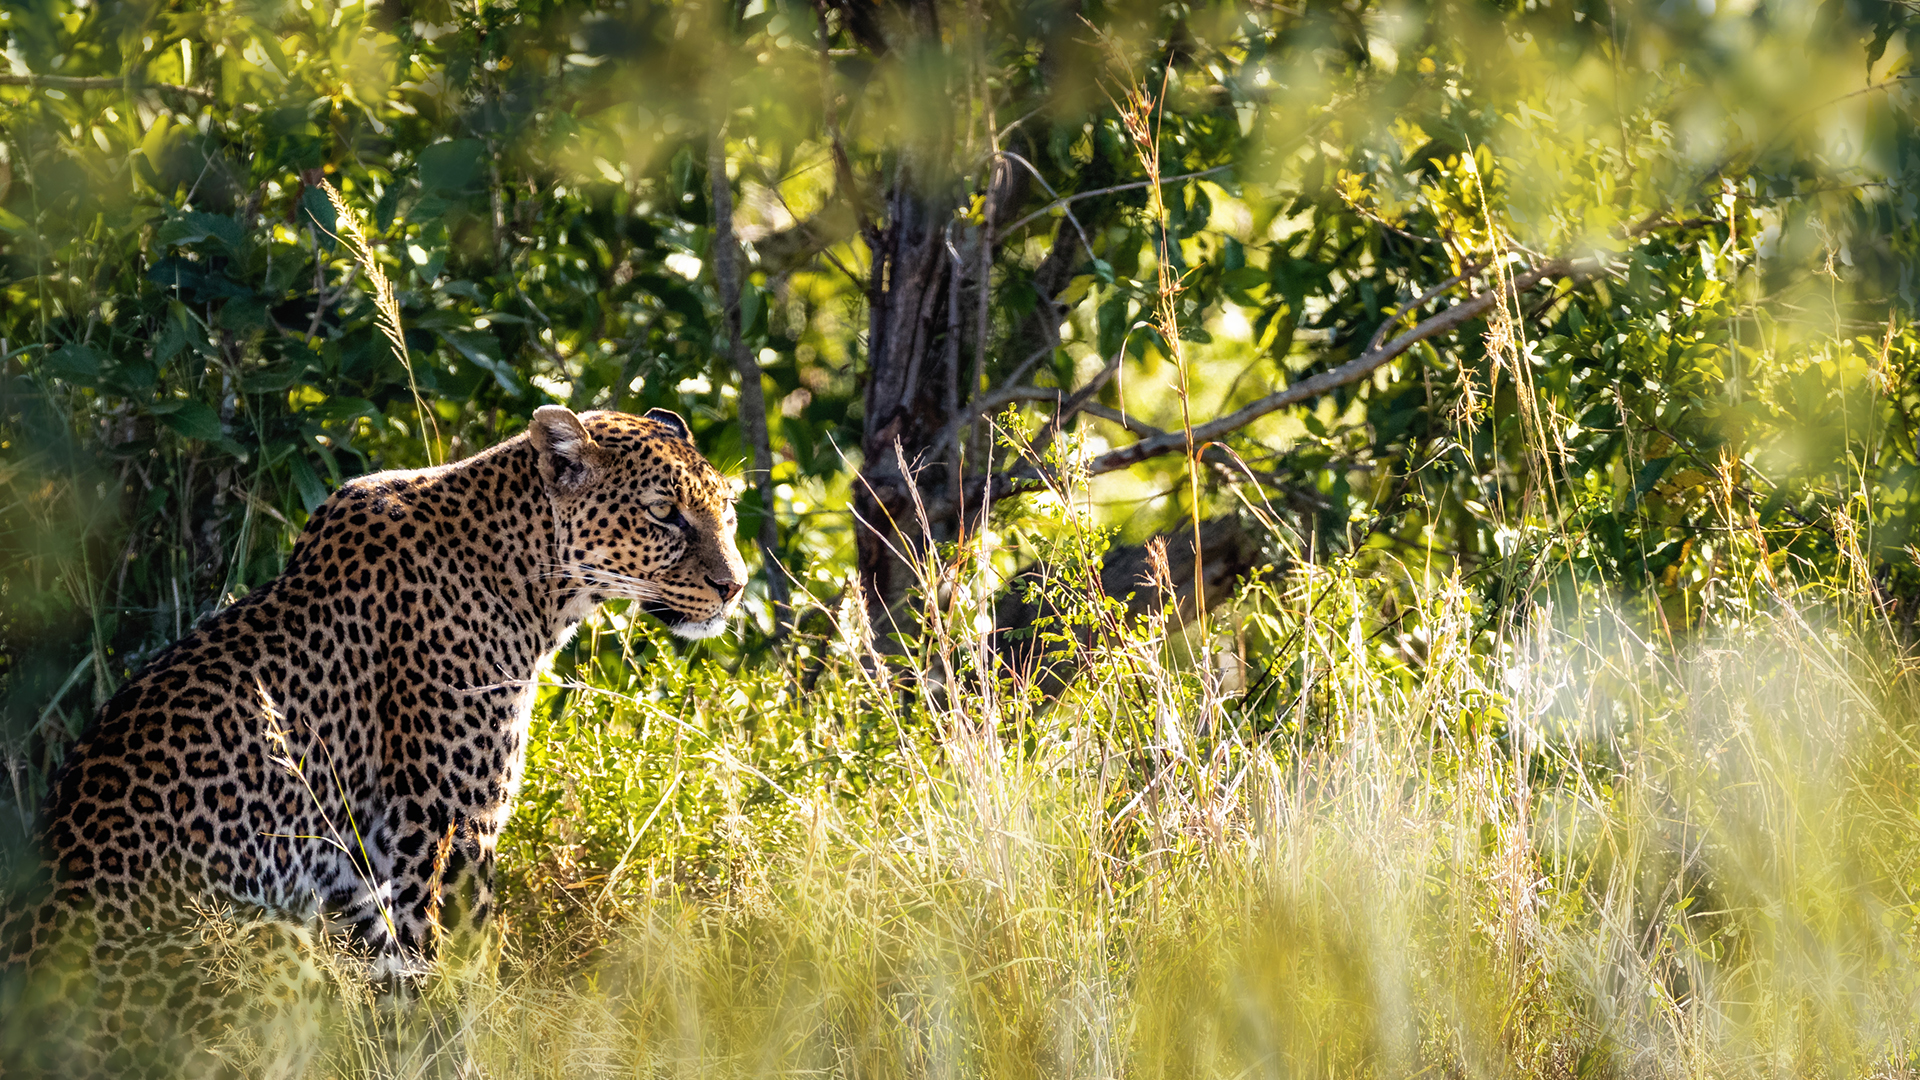 Leopard in Wild of Kenya Africa.jpg